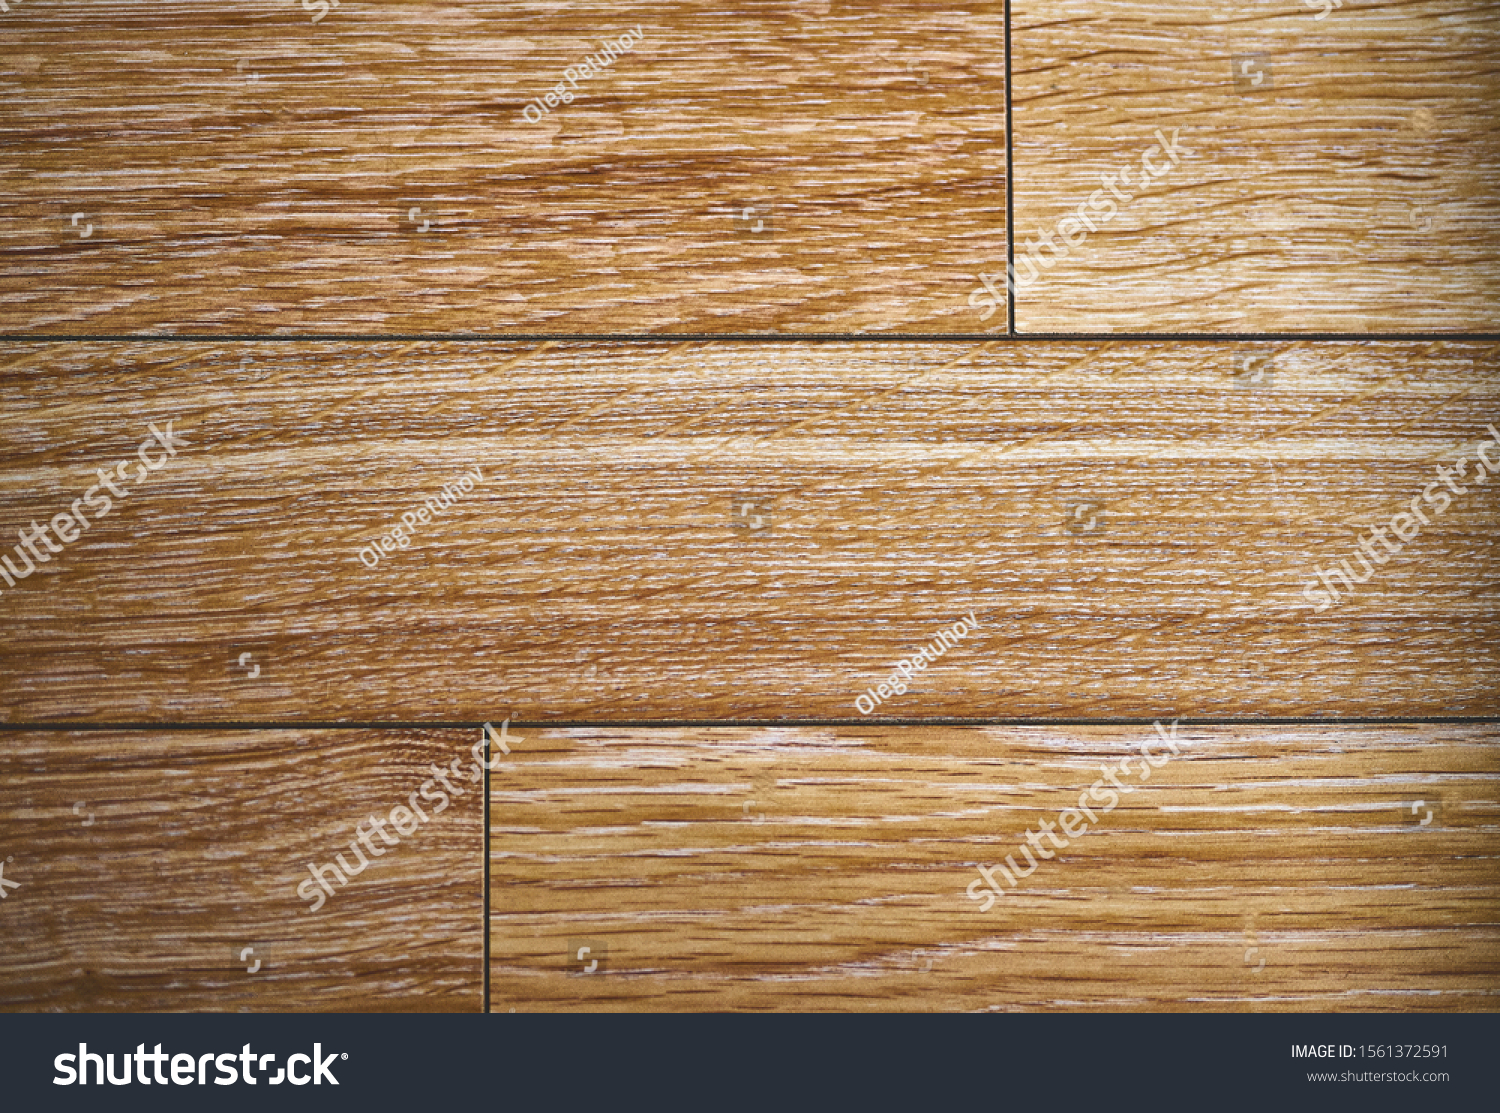 wood plank background or texture. light texture. wood plank texture. light background. wall of light wood planks #1561372591